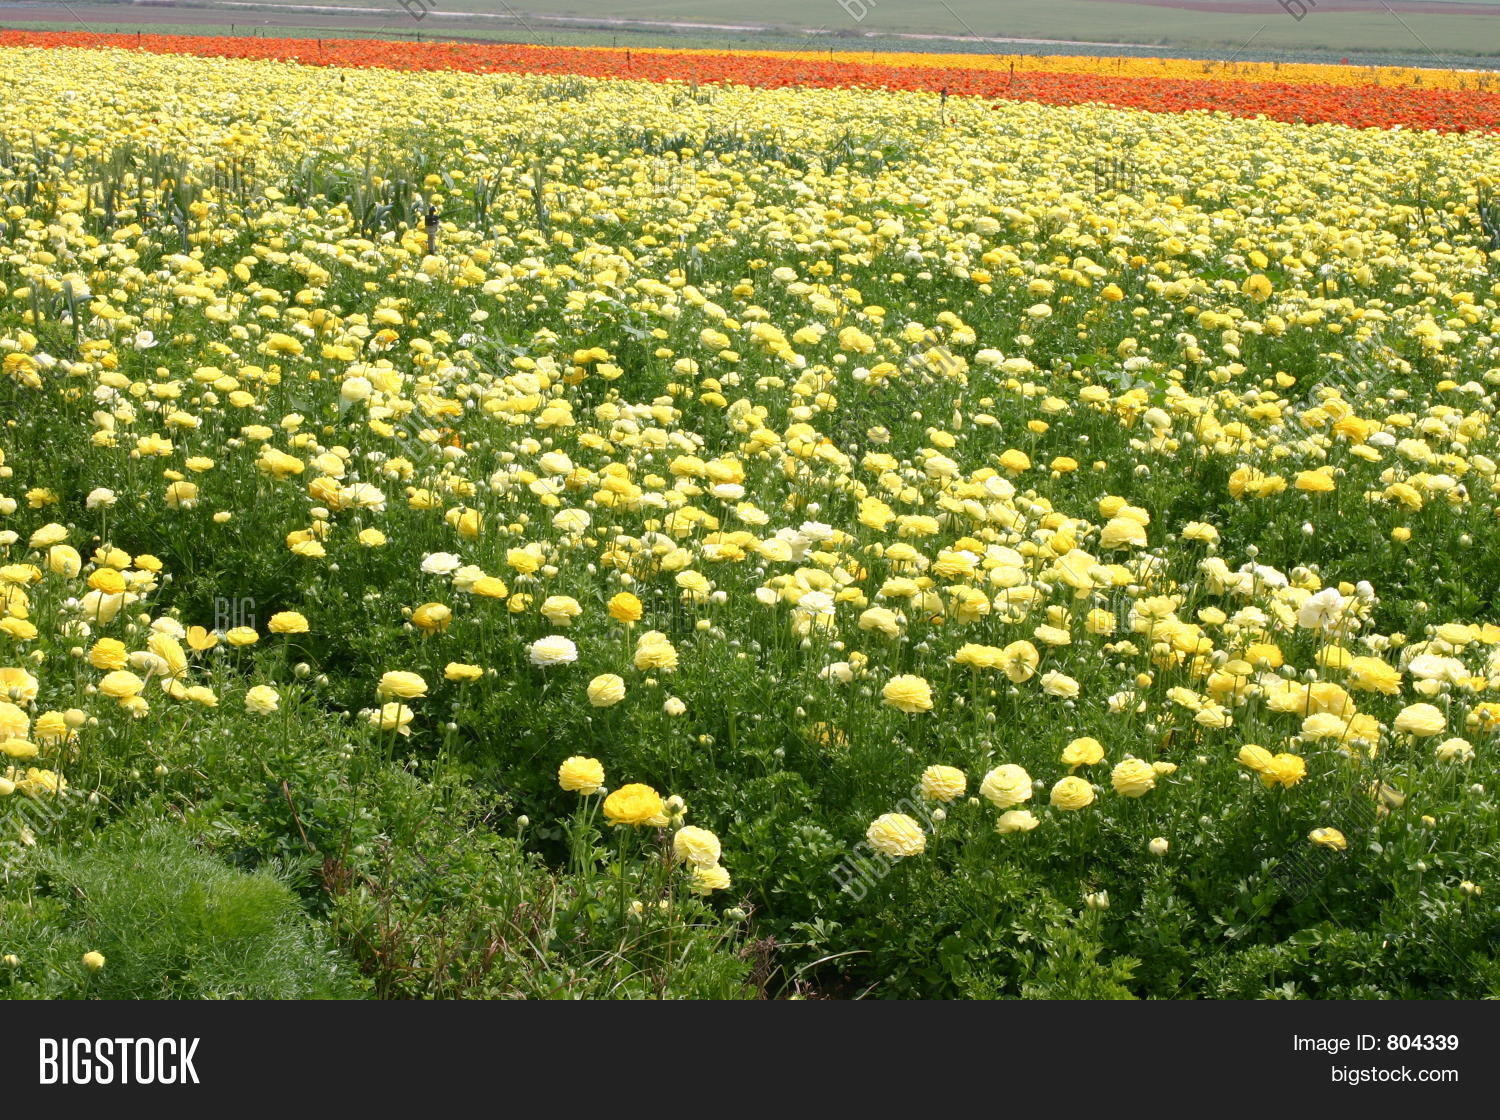 Carpet Yellow Roses Image Photo Free Trial Bigstock